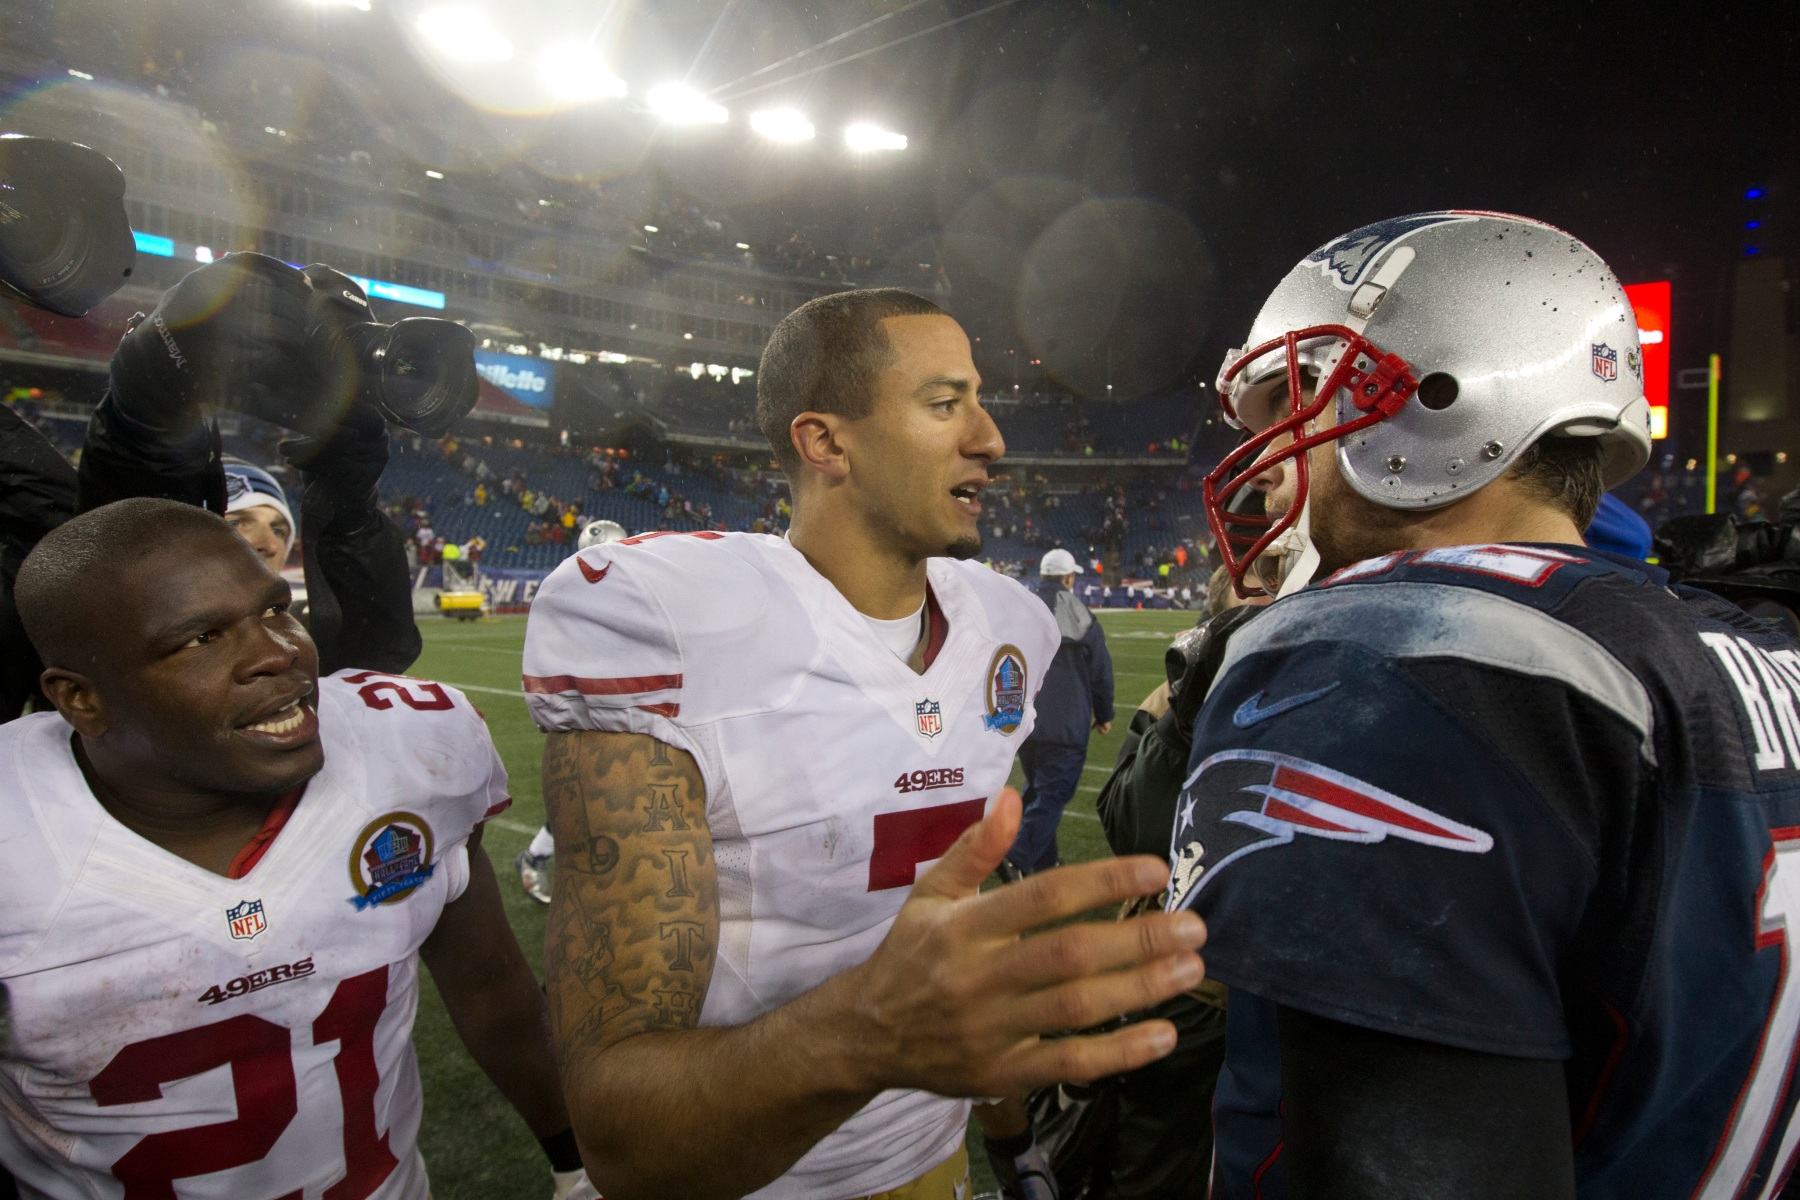 FOXBOROUGH, MA - DECEMBER 16: New England Patriots quarterback Tom Brady shakes hands with San Francisco 49ers Colin Kaepernikck and Frank Gore (#21) after the 49ers defeated the Patriots 41-34 at Gillette Stadium on Sunday, Dec. 16, 2012. (Photo by Matthew J. Lee/The Boston Globe via Getty Images)